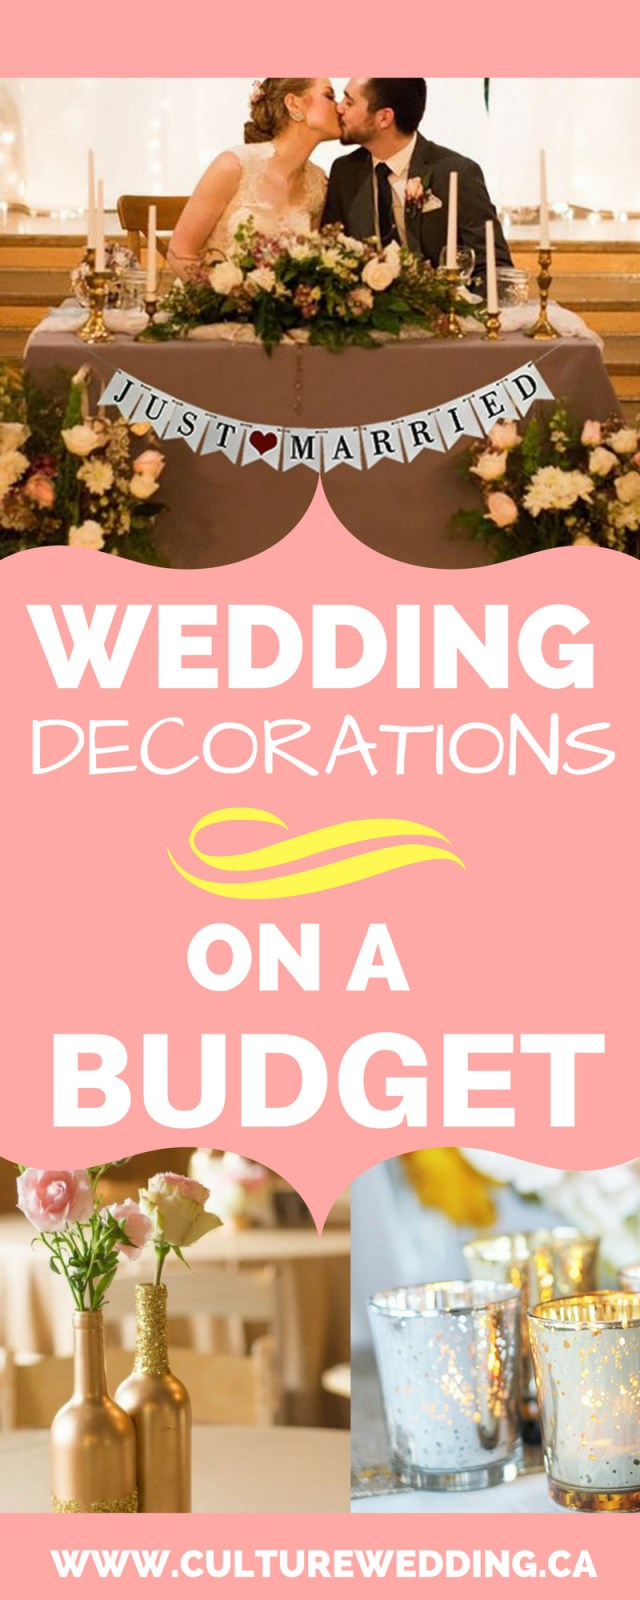 Diy Wedding Decorations On A Budget How To Get Wedding Decorations On A Budget Get Them Now